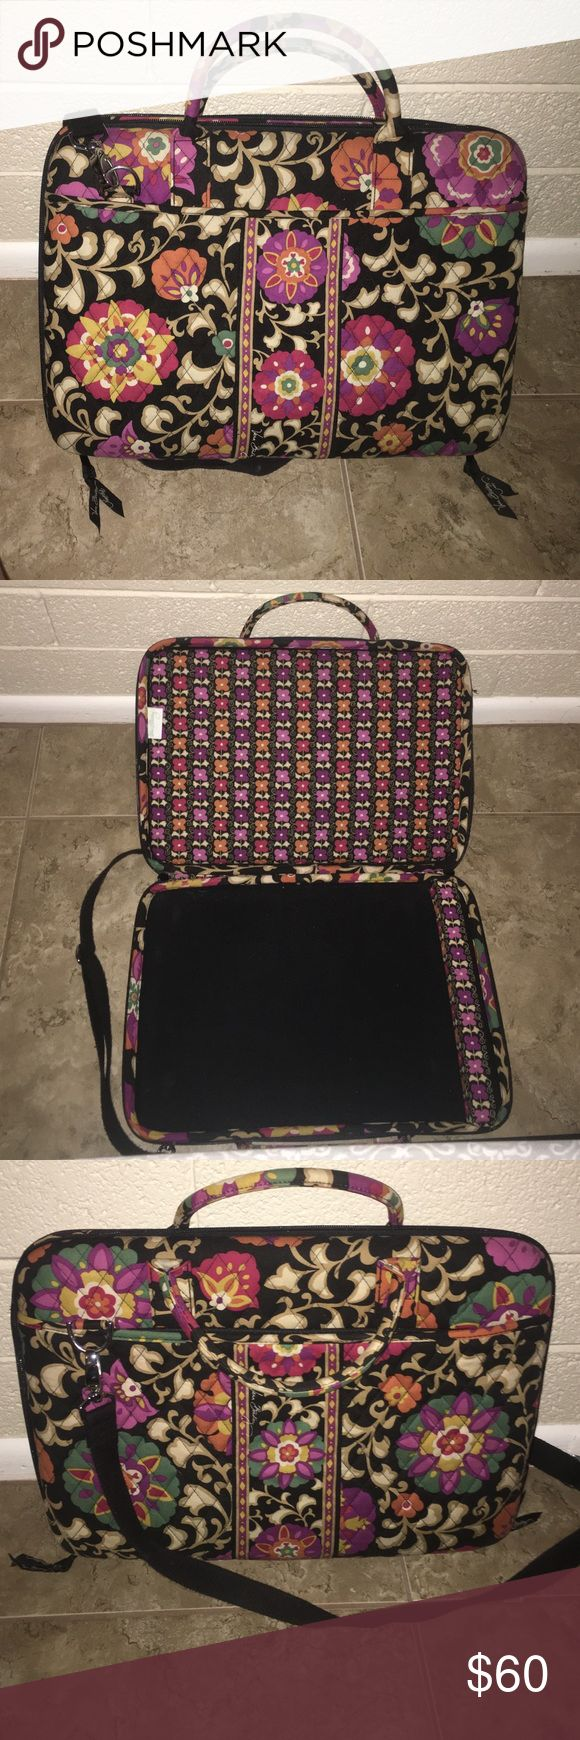 Vera Bradley Laptop Hardcase Suzani Style It is adjustable for many different sized laptops, black strap. Has only been used a few times. Vera Bradley Bags Laptop Bags